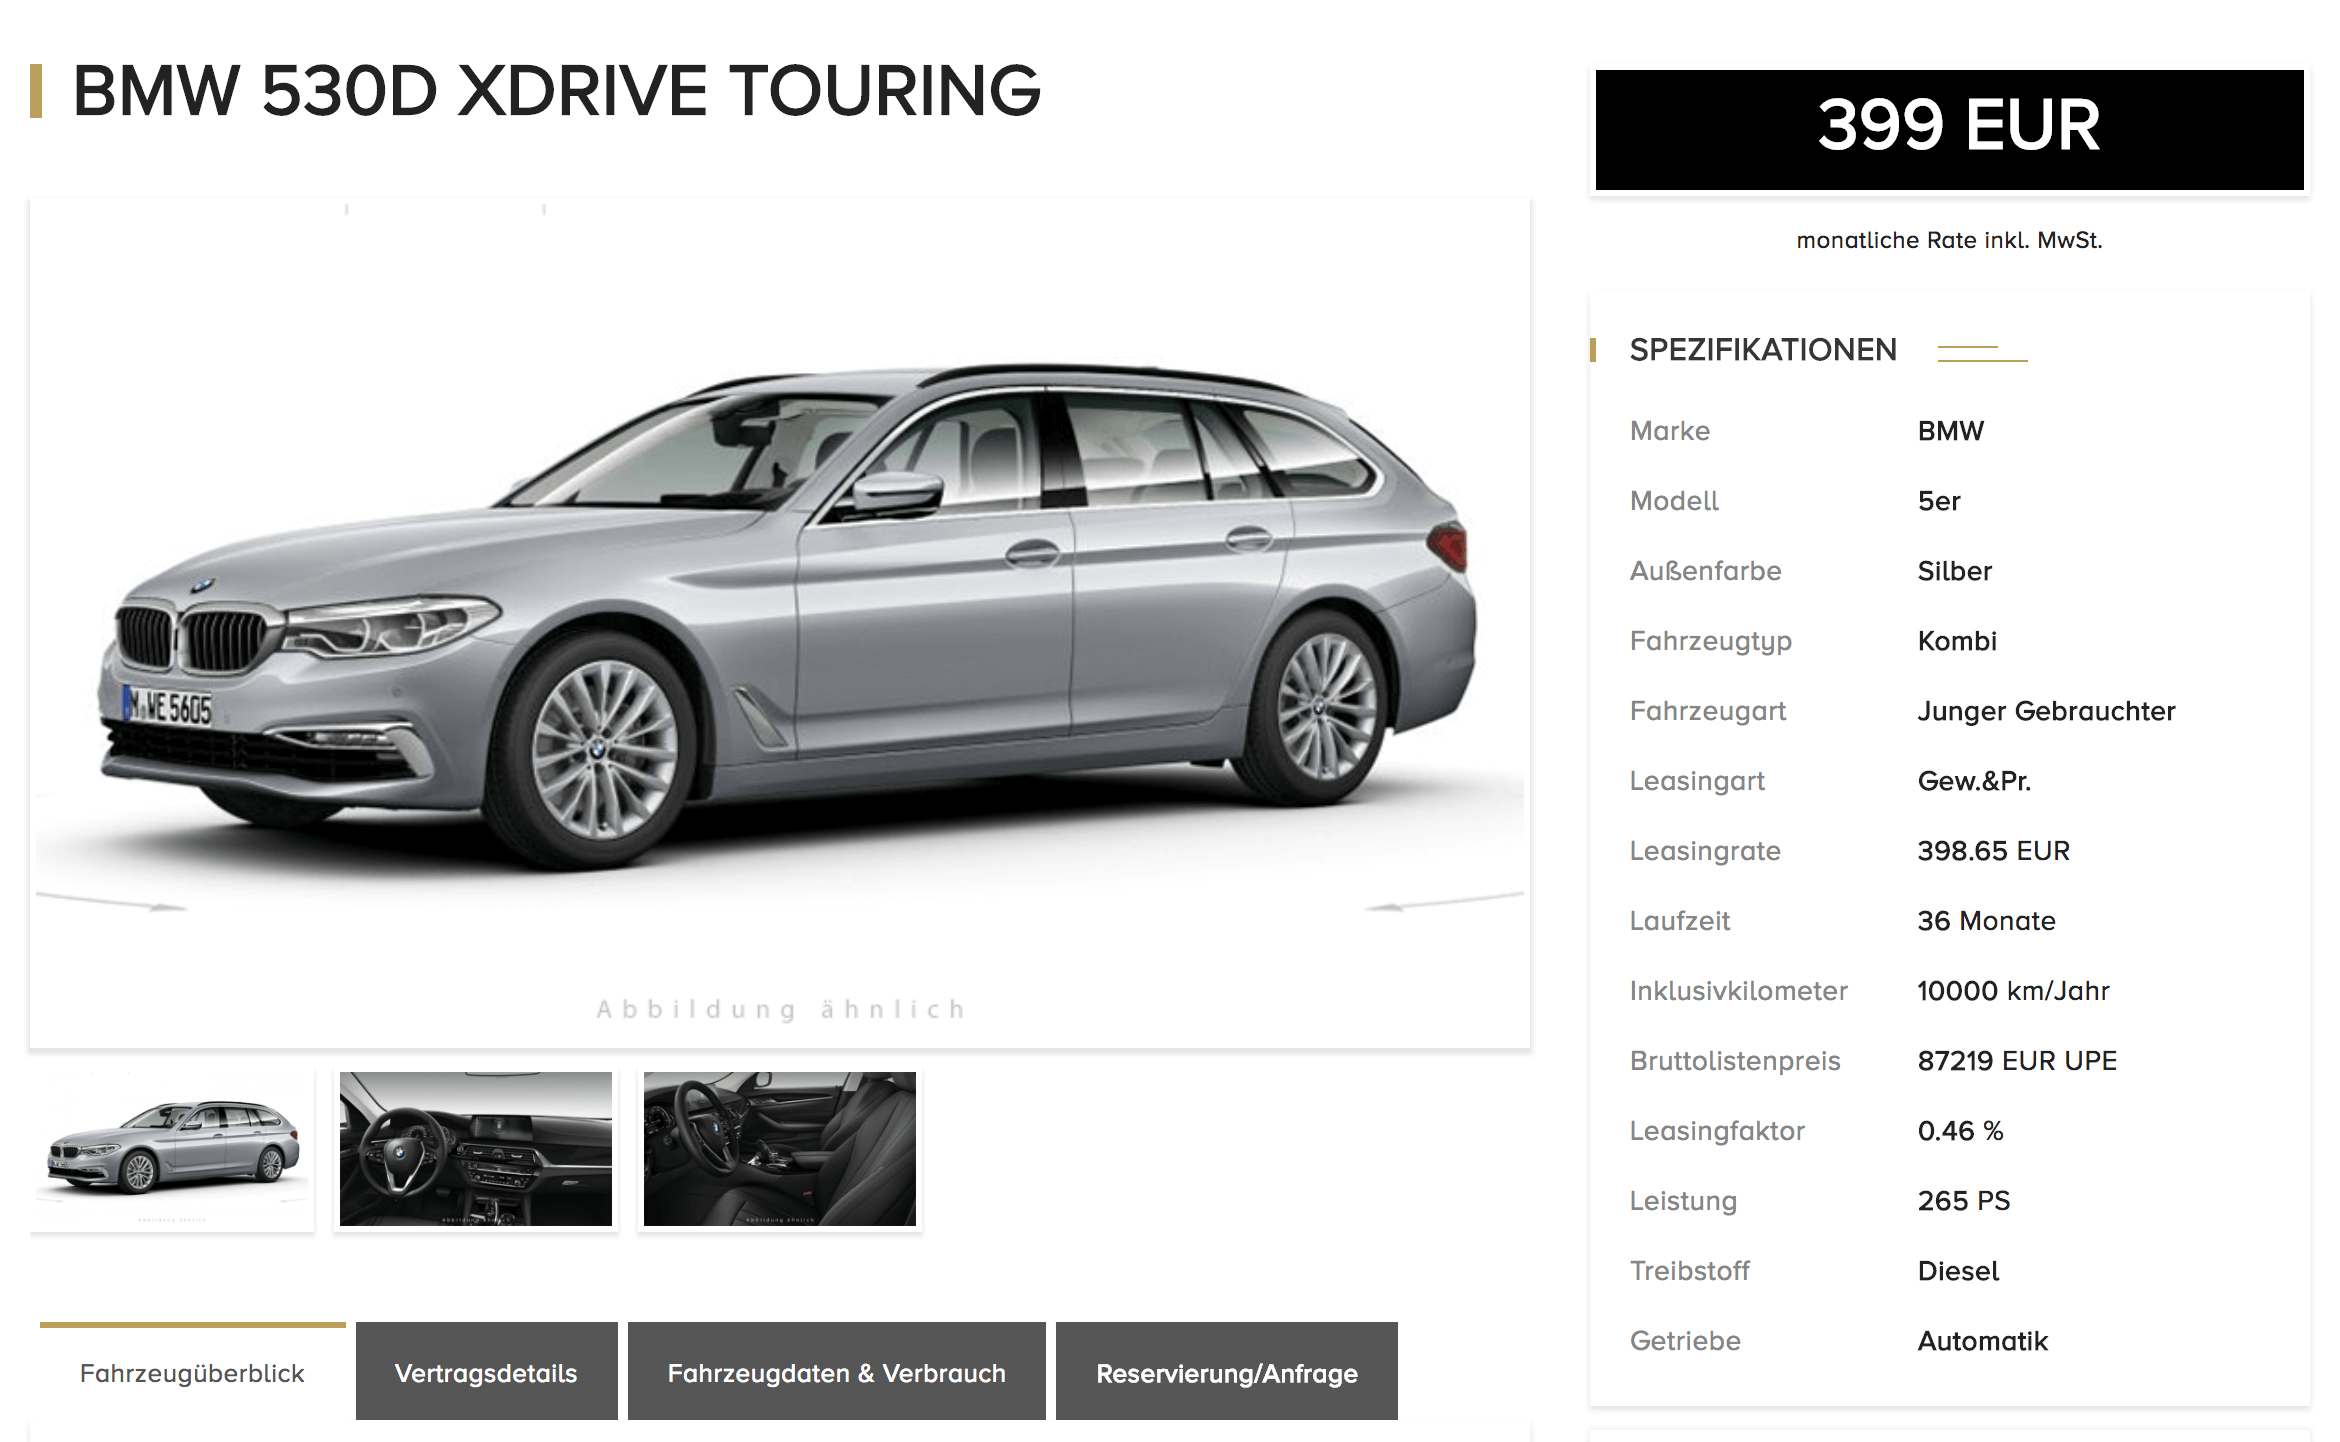 bmw 530d xdrive touring leasing ab 392 euro im monat brutto jahreswagen. Black Bedroom Furniture Sets. Home Design Ideas